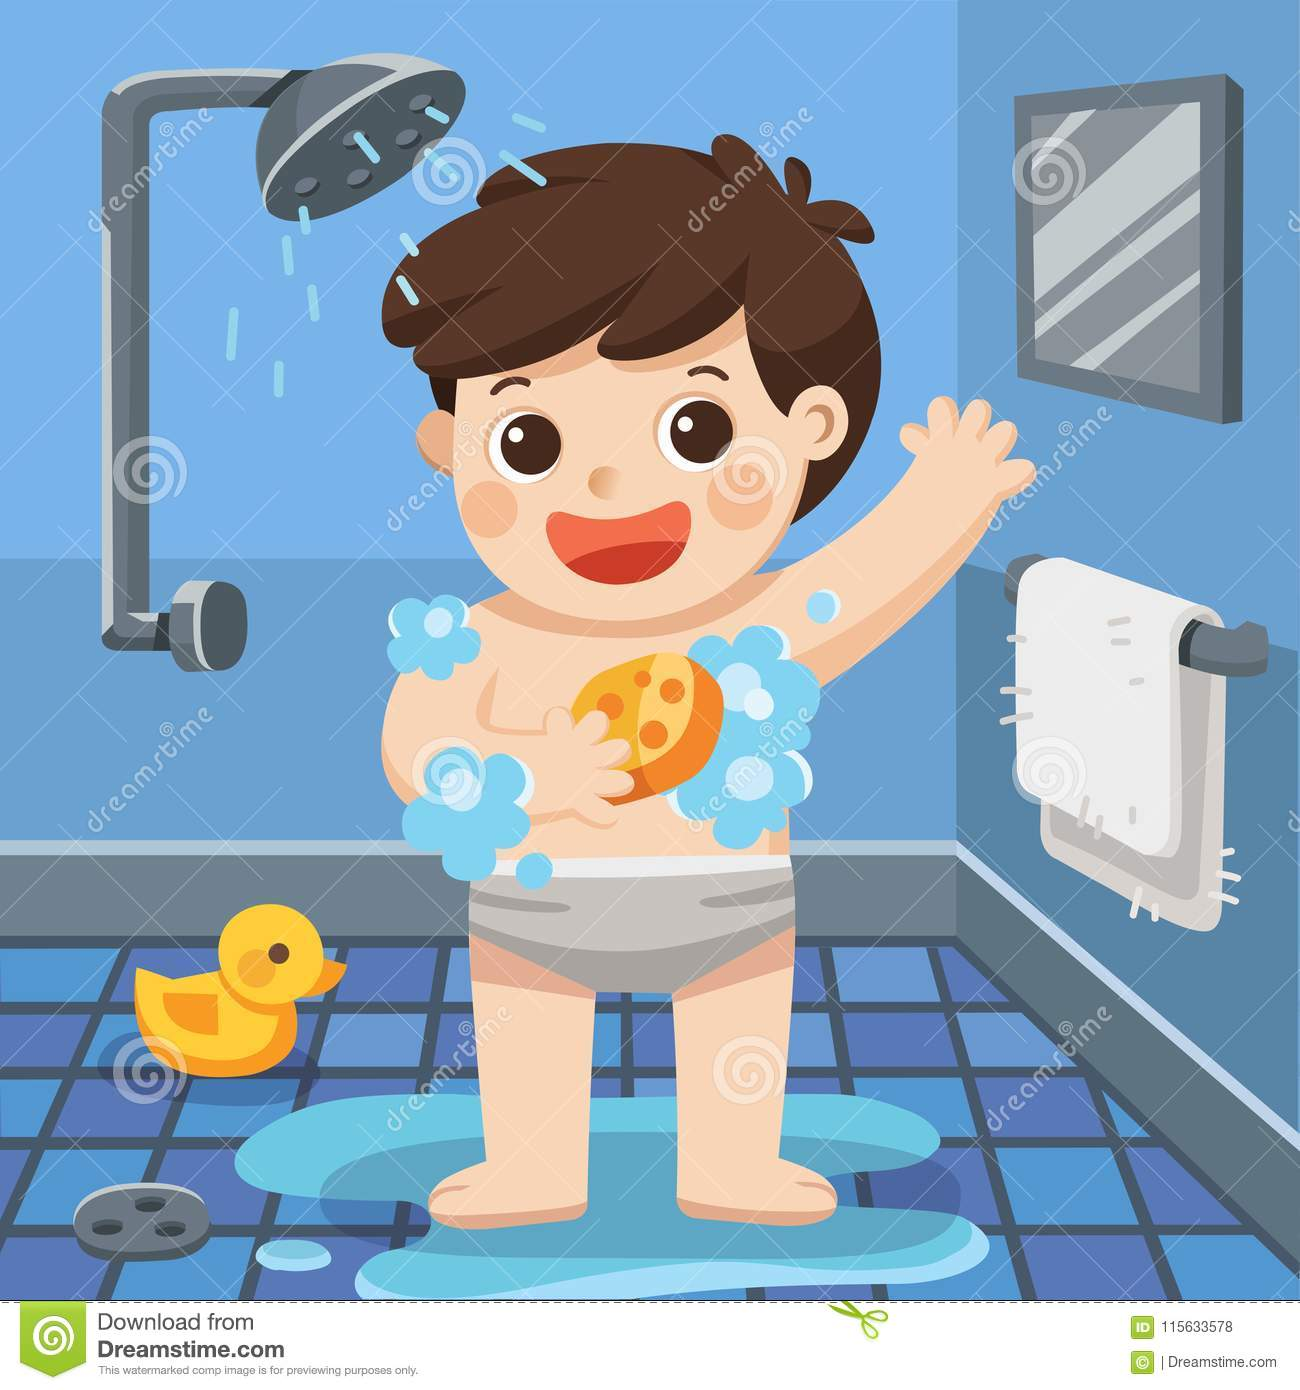 A Boy Taking A Shower In Bathroom. Stock Vector.